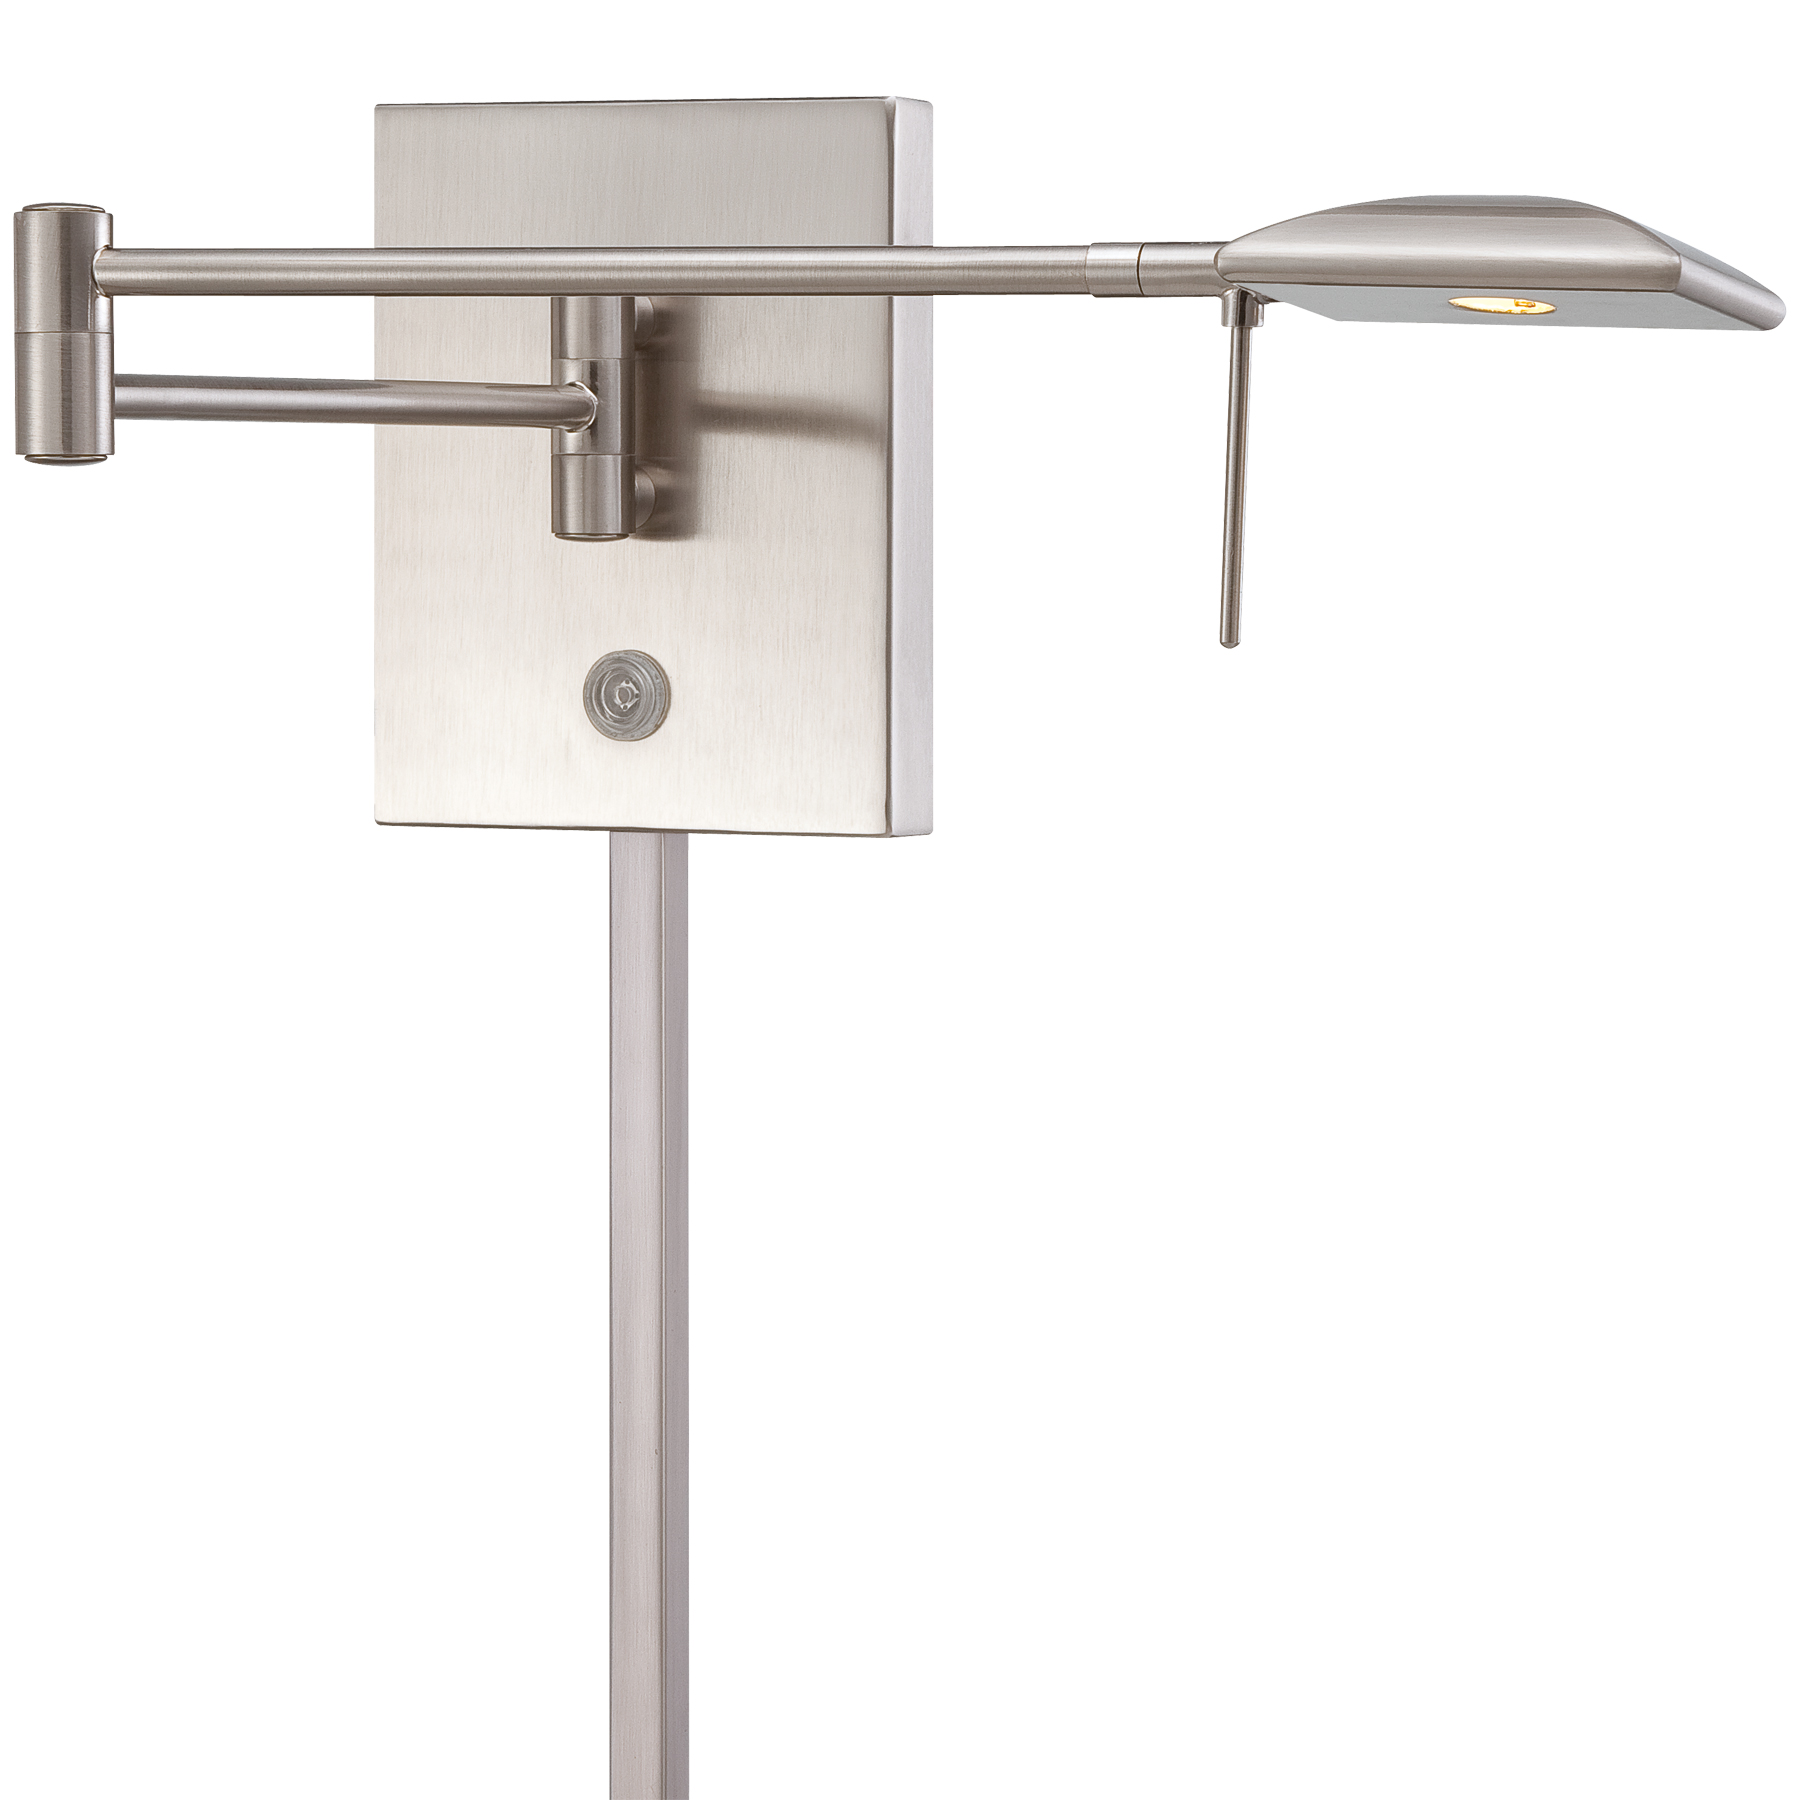 P4328 led swing arm wall sconce by george kovacs p4328 084 Beautiful swing arm wall lamps and sconces